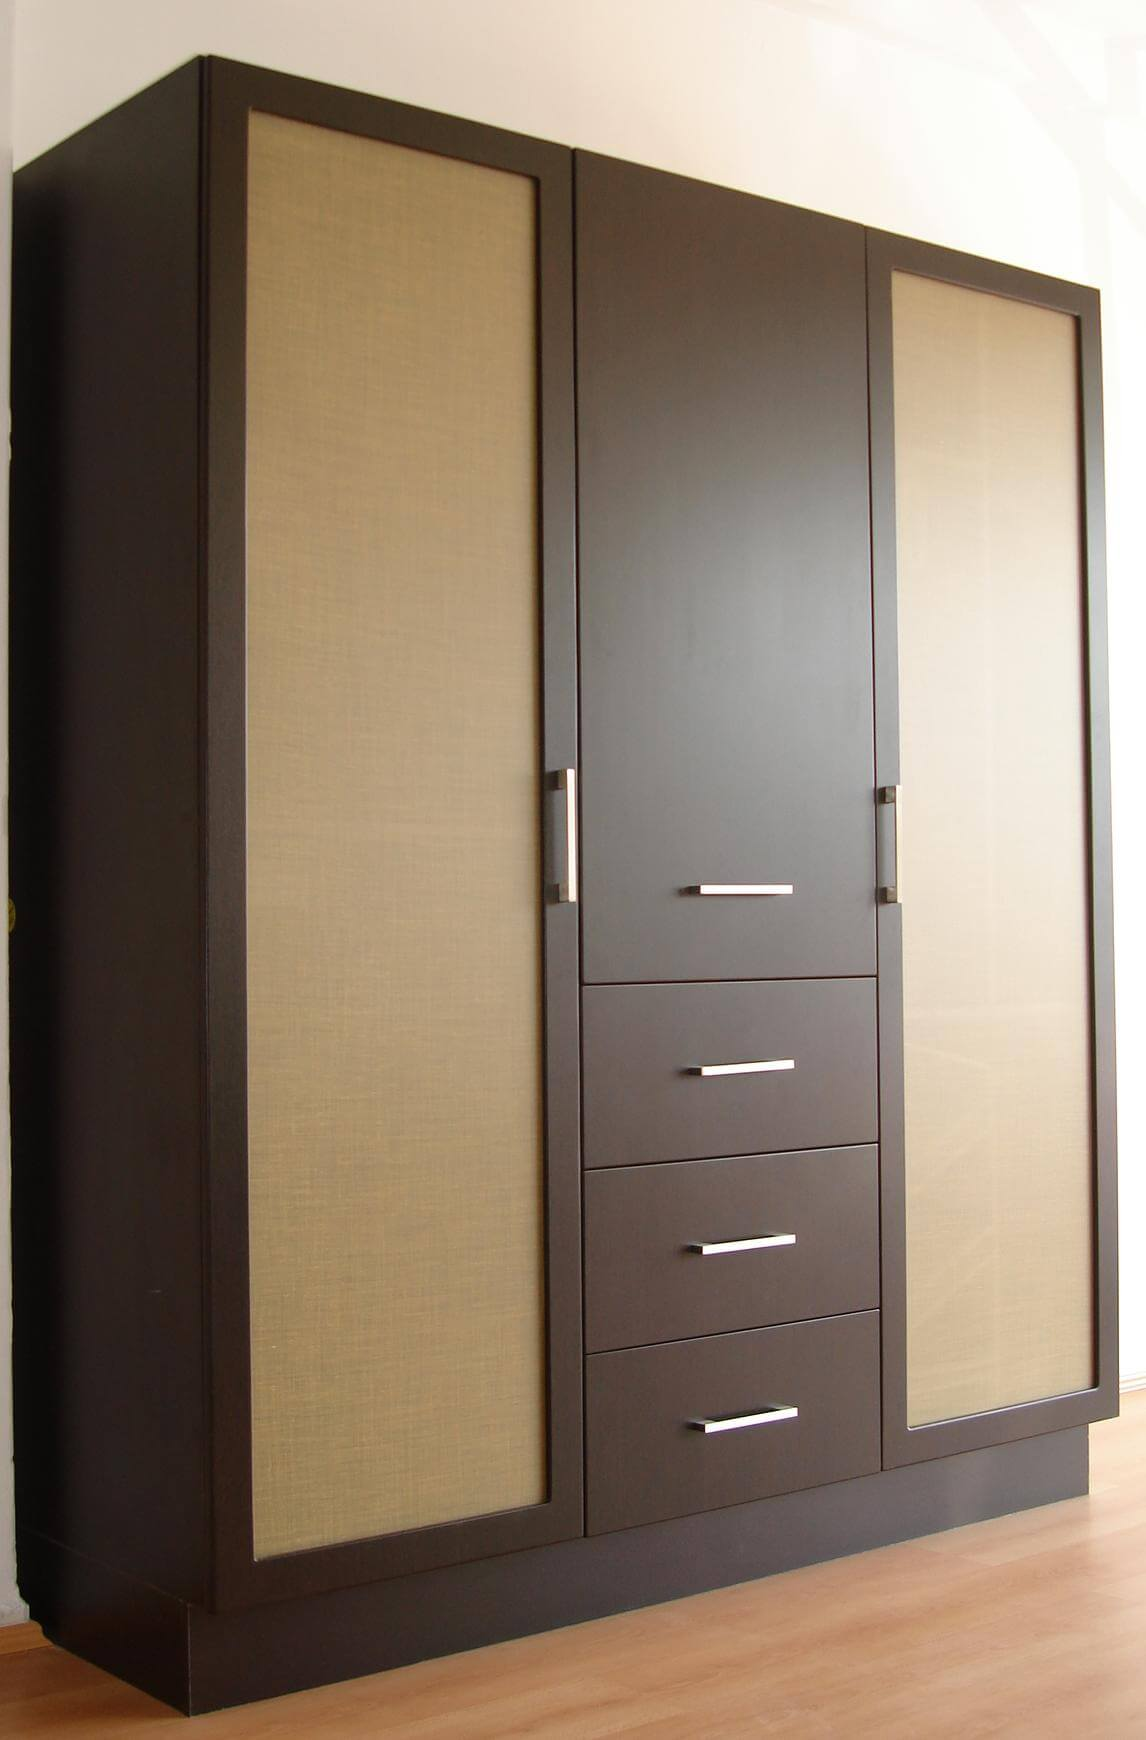 Armoire Storage Cabinet | Free Standing Closet Wardrobe | White Armoire Wardrobe Bedroom Furniture